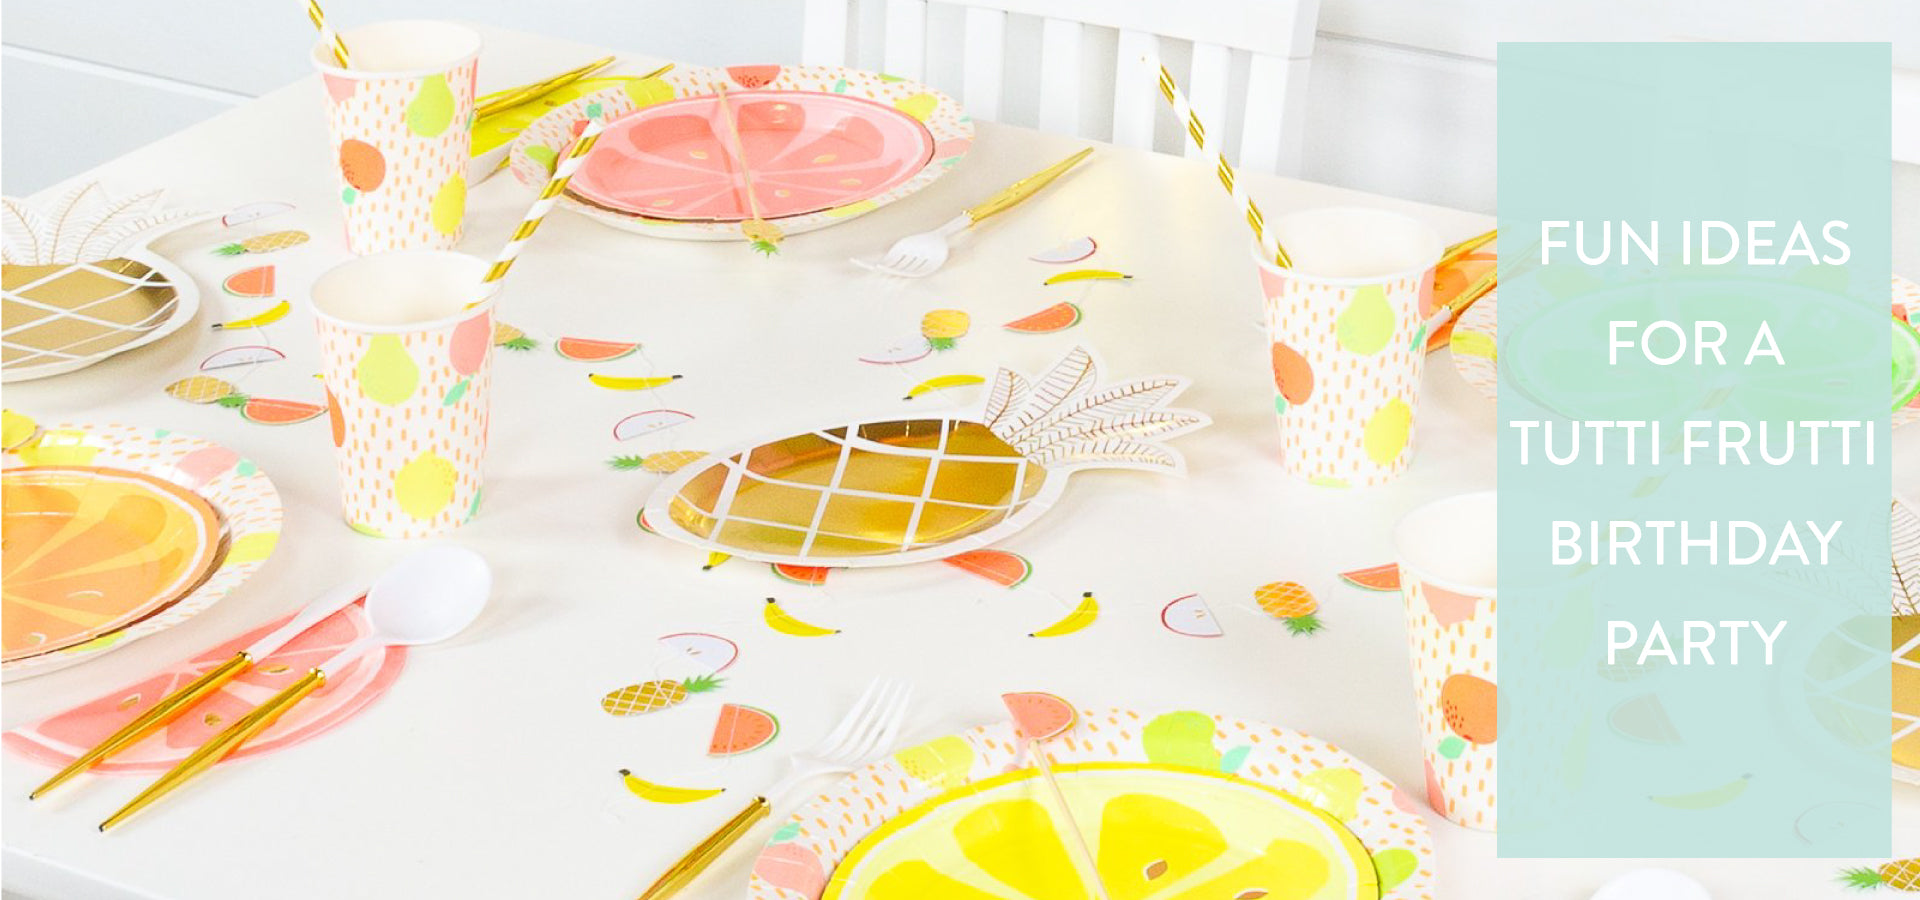 Fun Ideas for a Tutti Frutti Birthday Party | The Party Darling